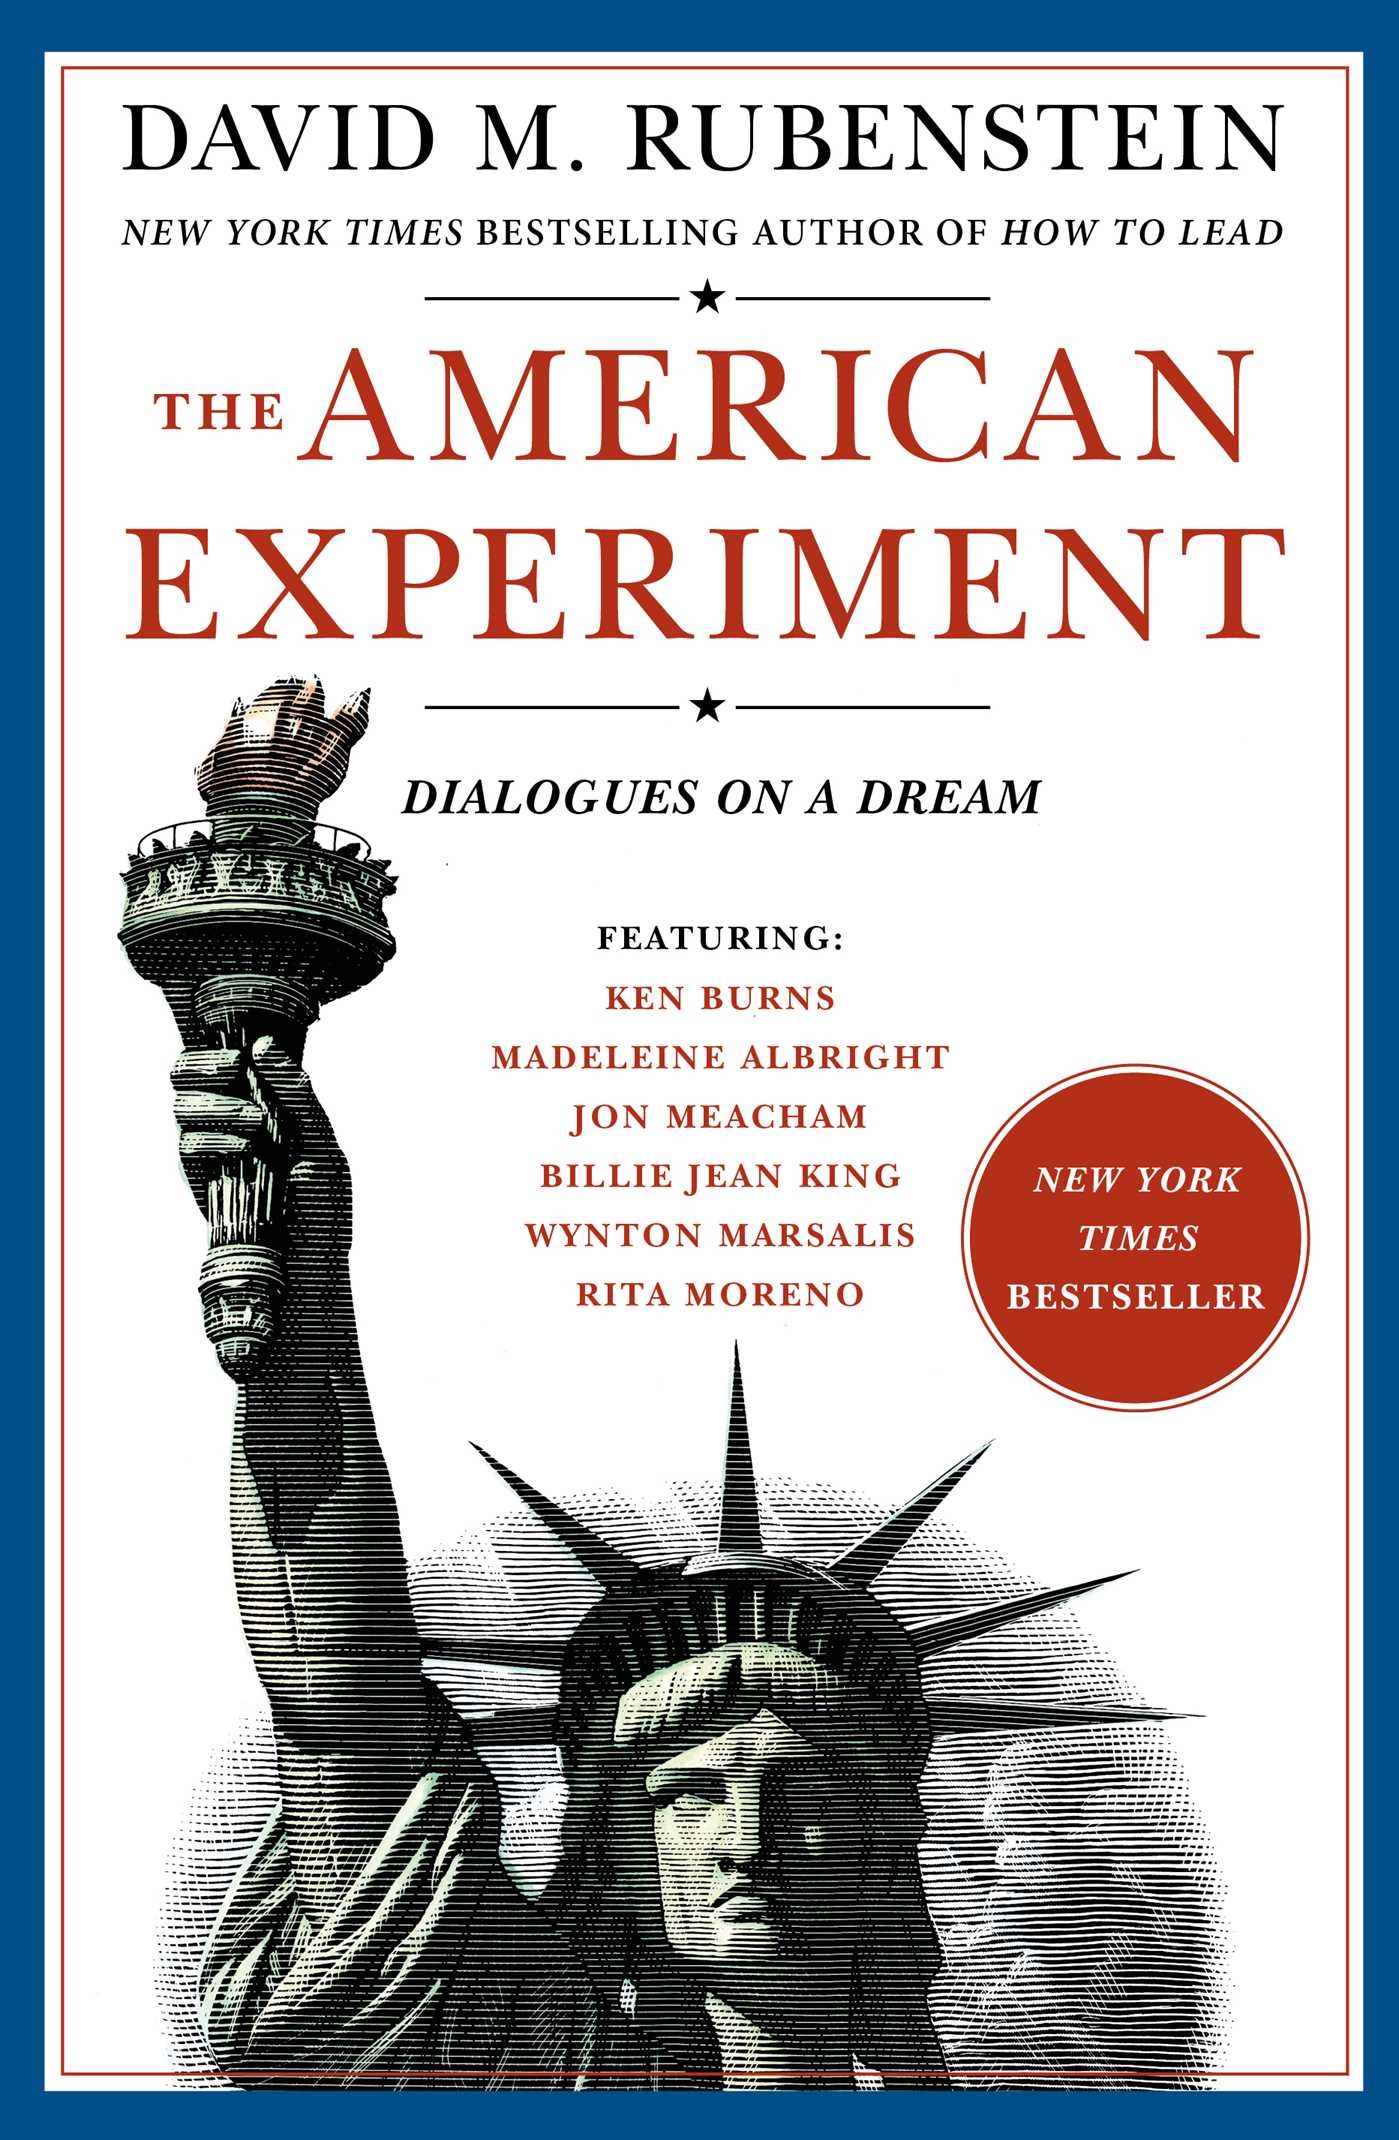 The American Experiment Dialogues on a Dream